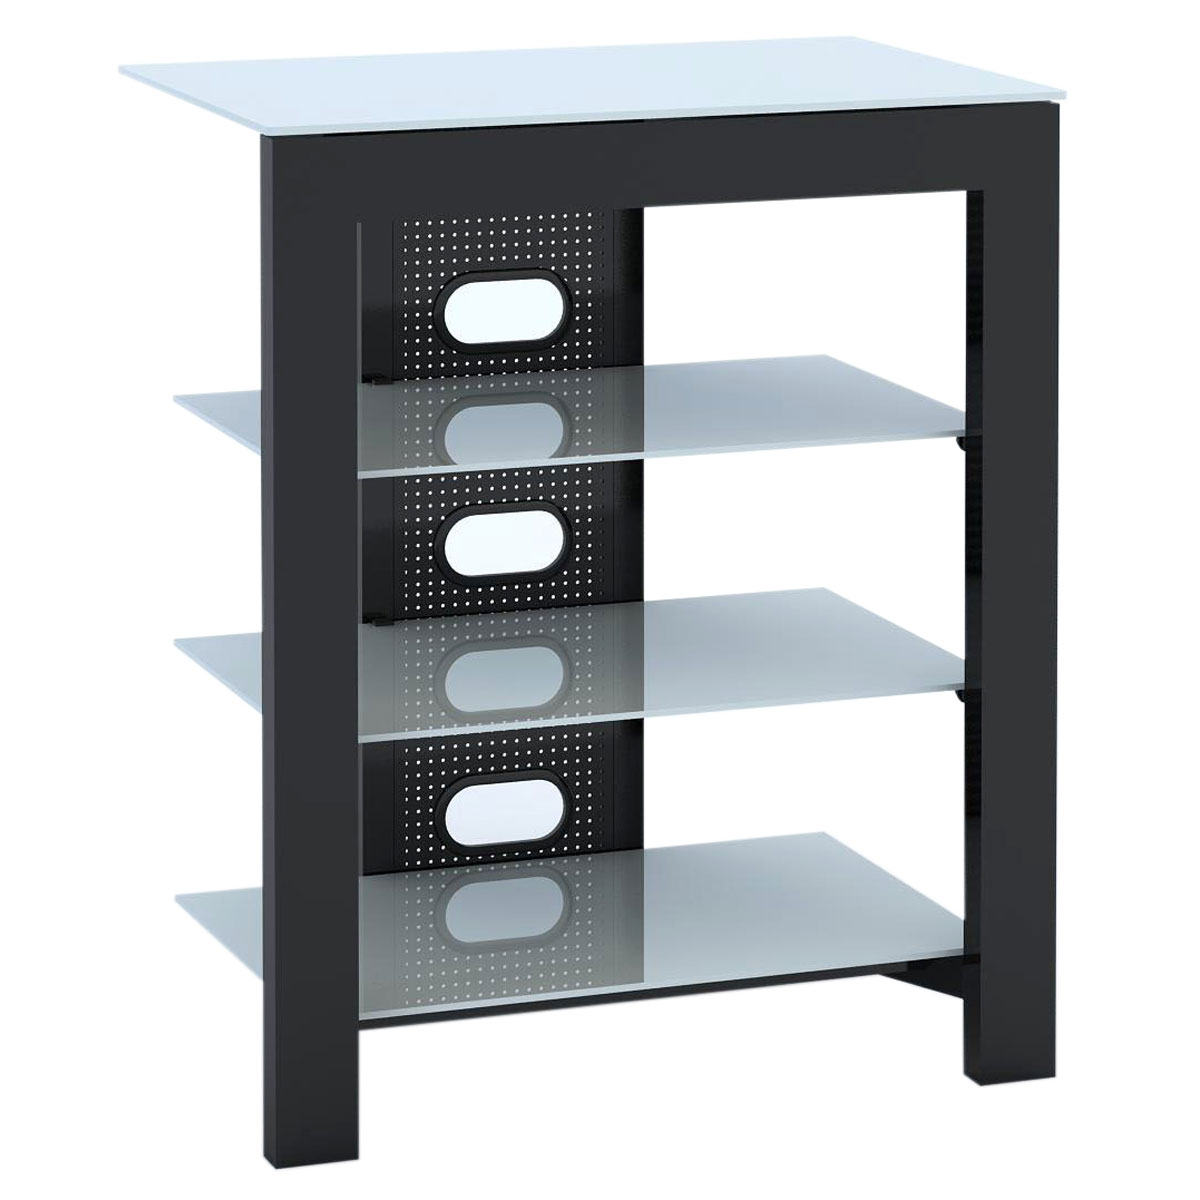 de conti arca xl blanc meuble tv de conti sur. Black Bedroom Furniture Sets. Home Design Ideas